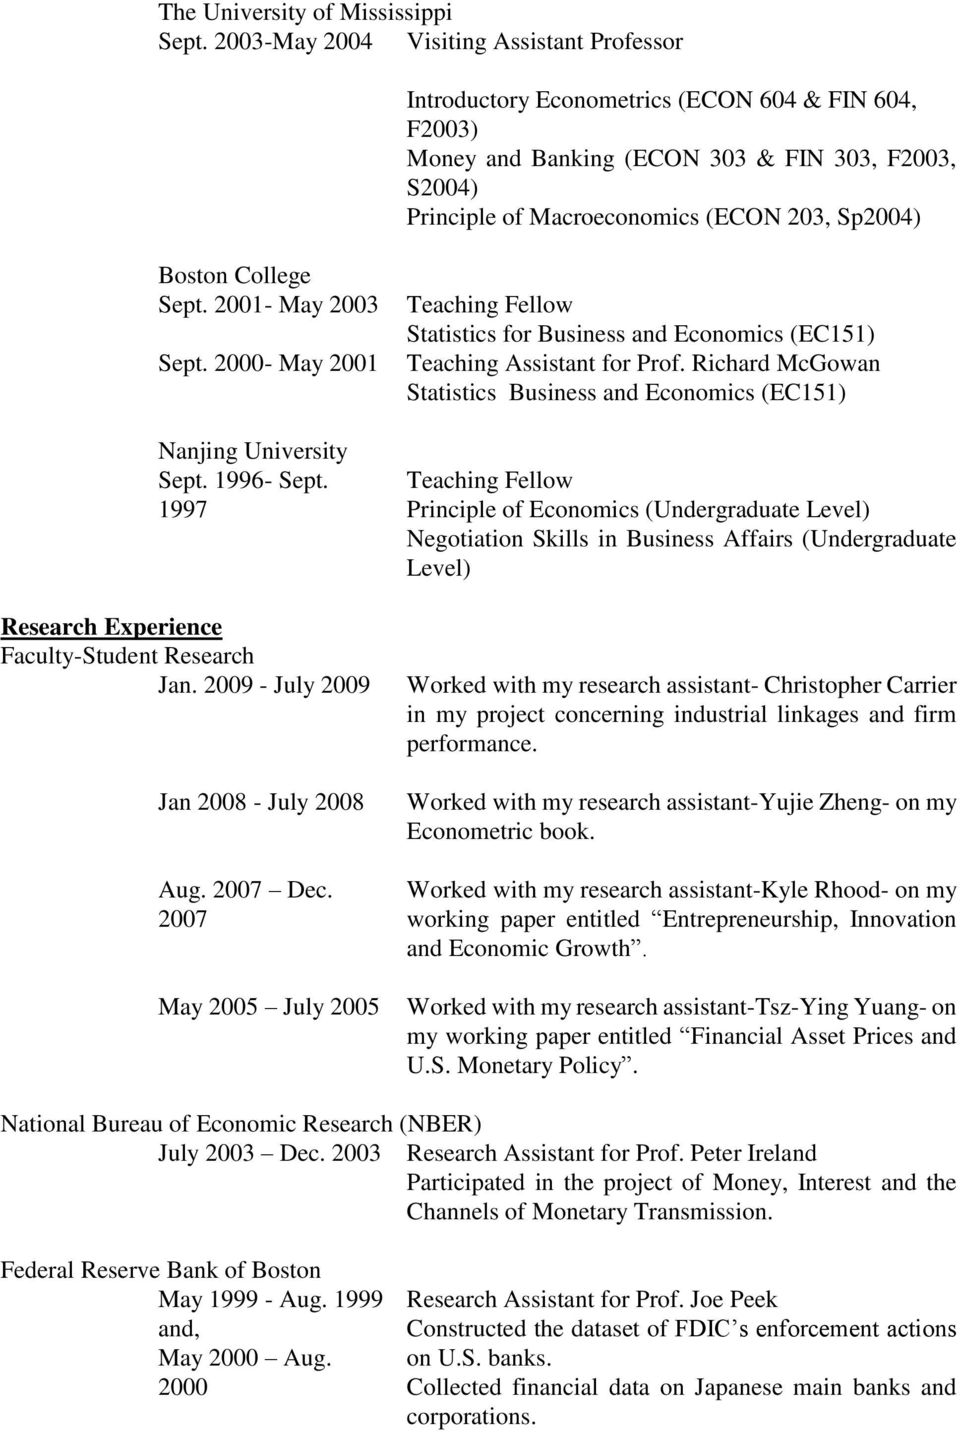 Boston College Sept. 2001- May 2003 Sept. 2000- May 2001 Nanjing University Sept. 1996- Sept. 1997 Research Experience Faculty-Student Research Jan. 2009 - July 2009 Jan 2008 - July 2008 Aug.